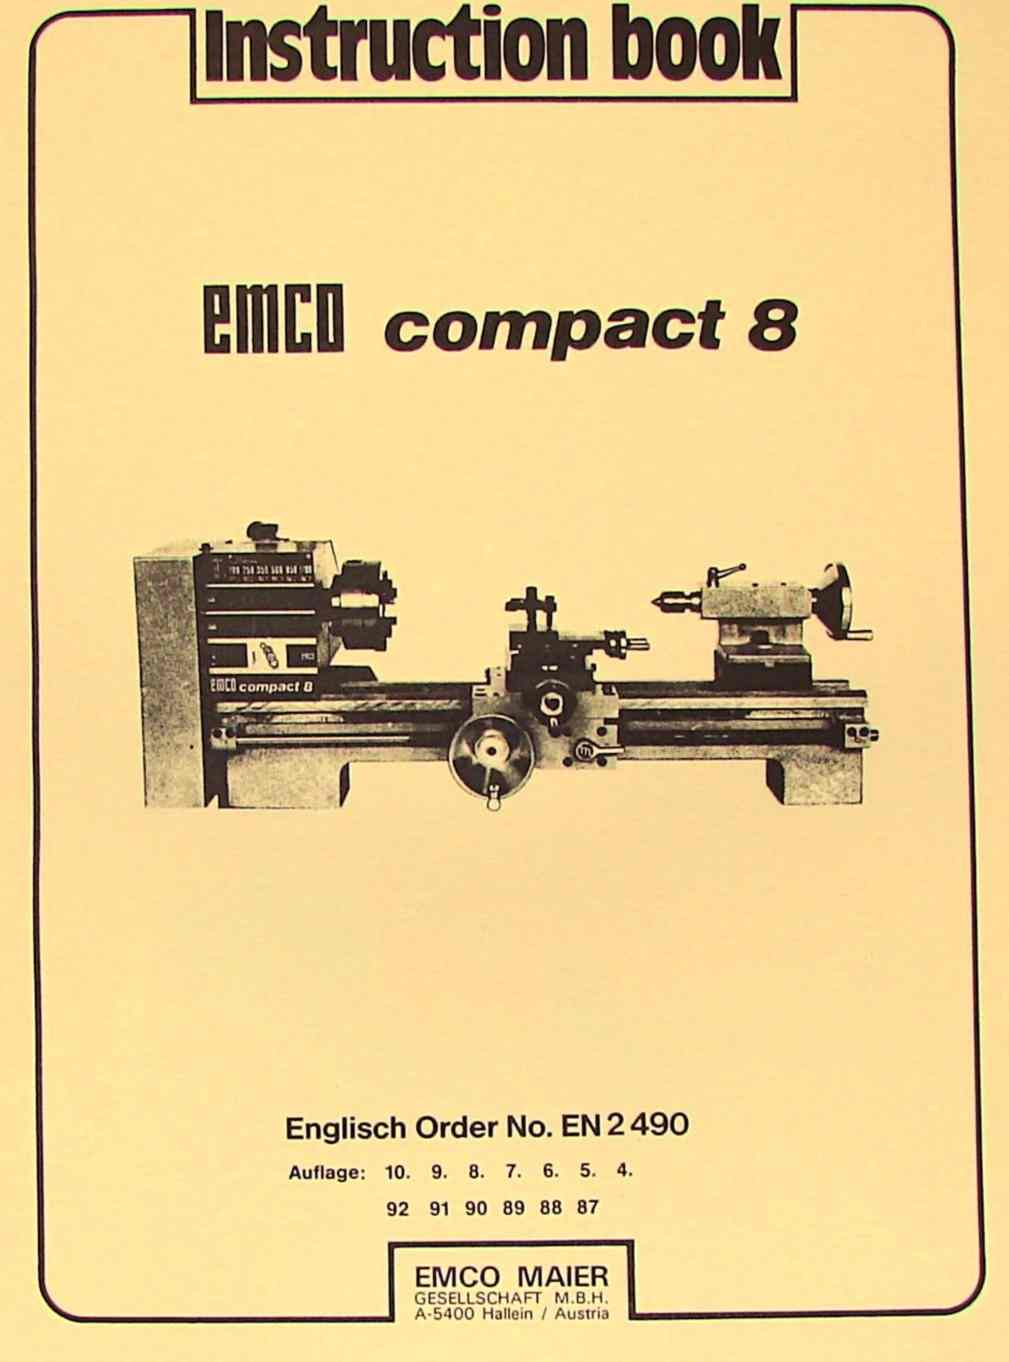 How To Wiring Books Electrical Diagram Basic Book Emco Compact 8 Metal Lathe Instructions Manual Ozark Diagrams